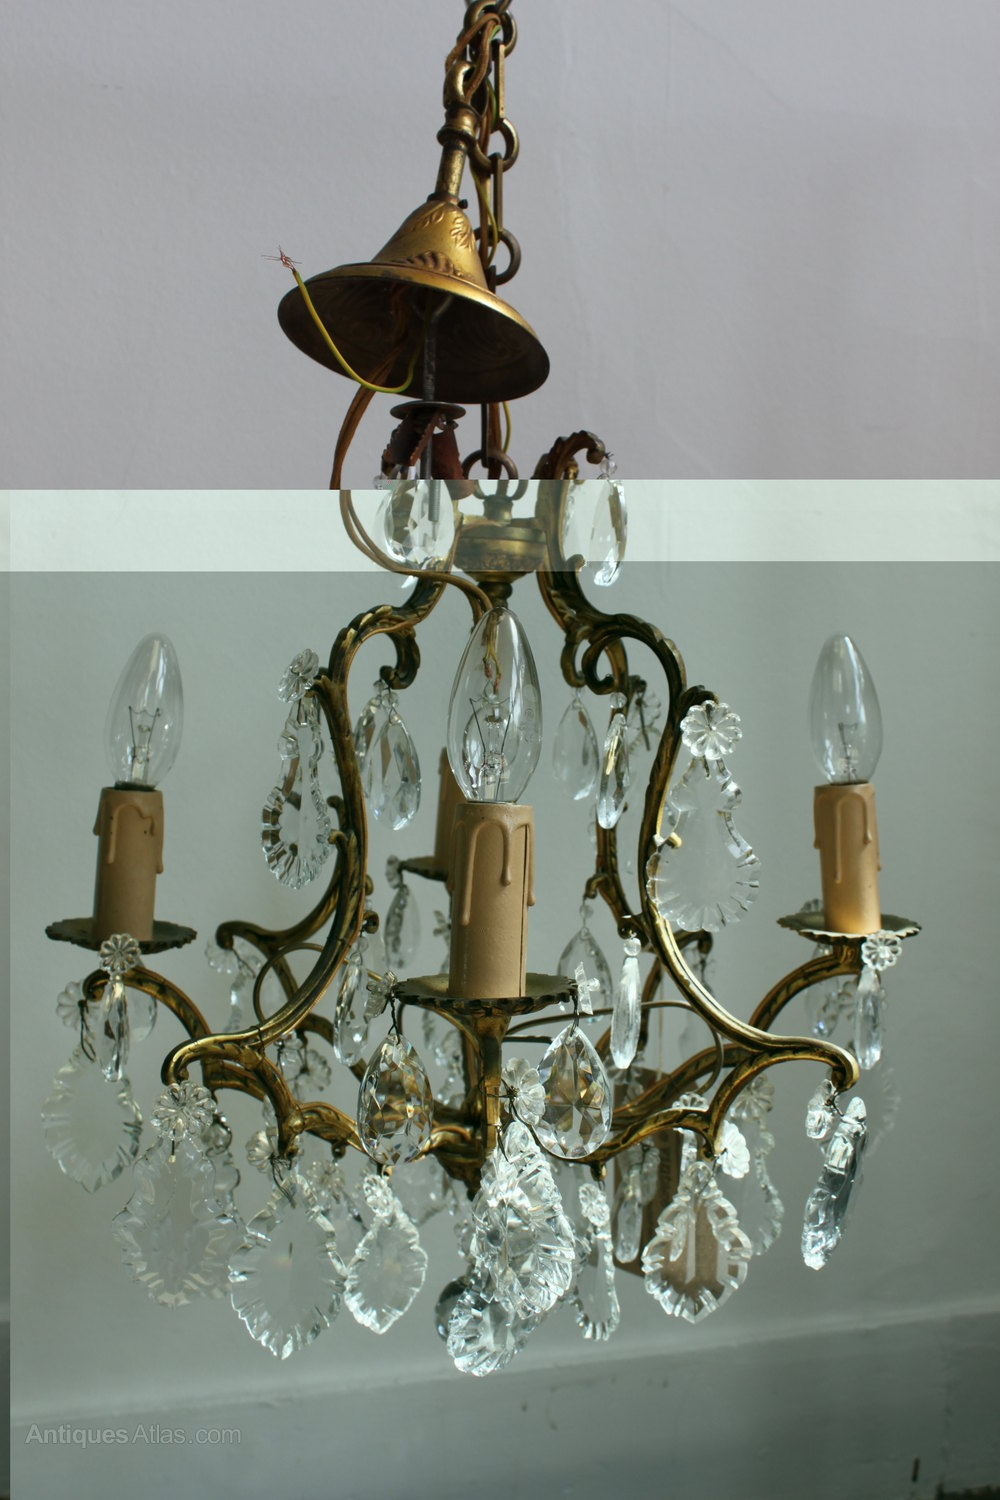 Antique French Chandelier Antique Furniture Within Antique French  Chandeliers (#3 of 12) - 12 Ideas Of Antique French Chandeliers